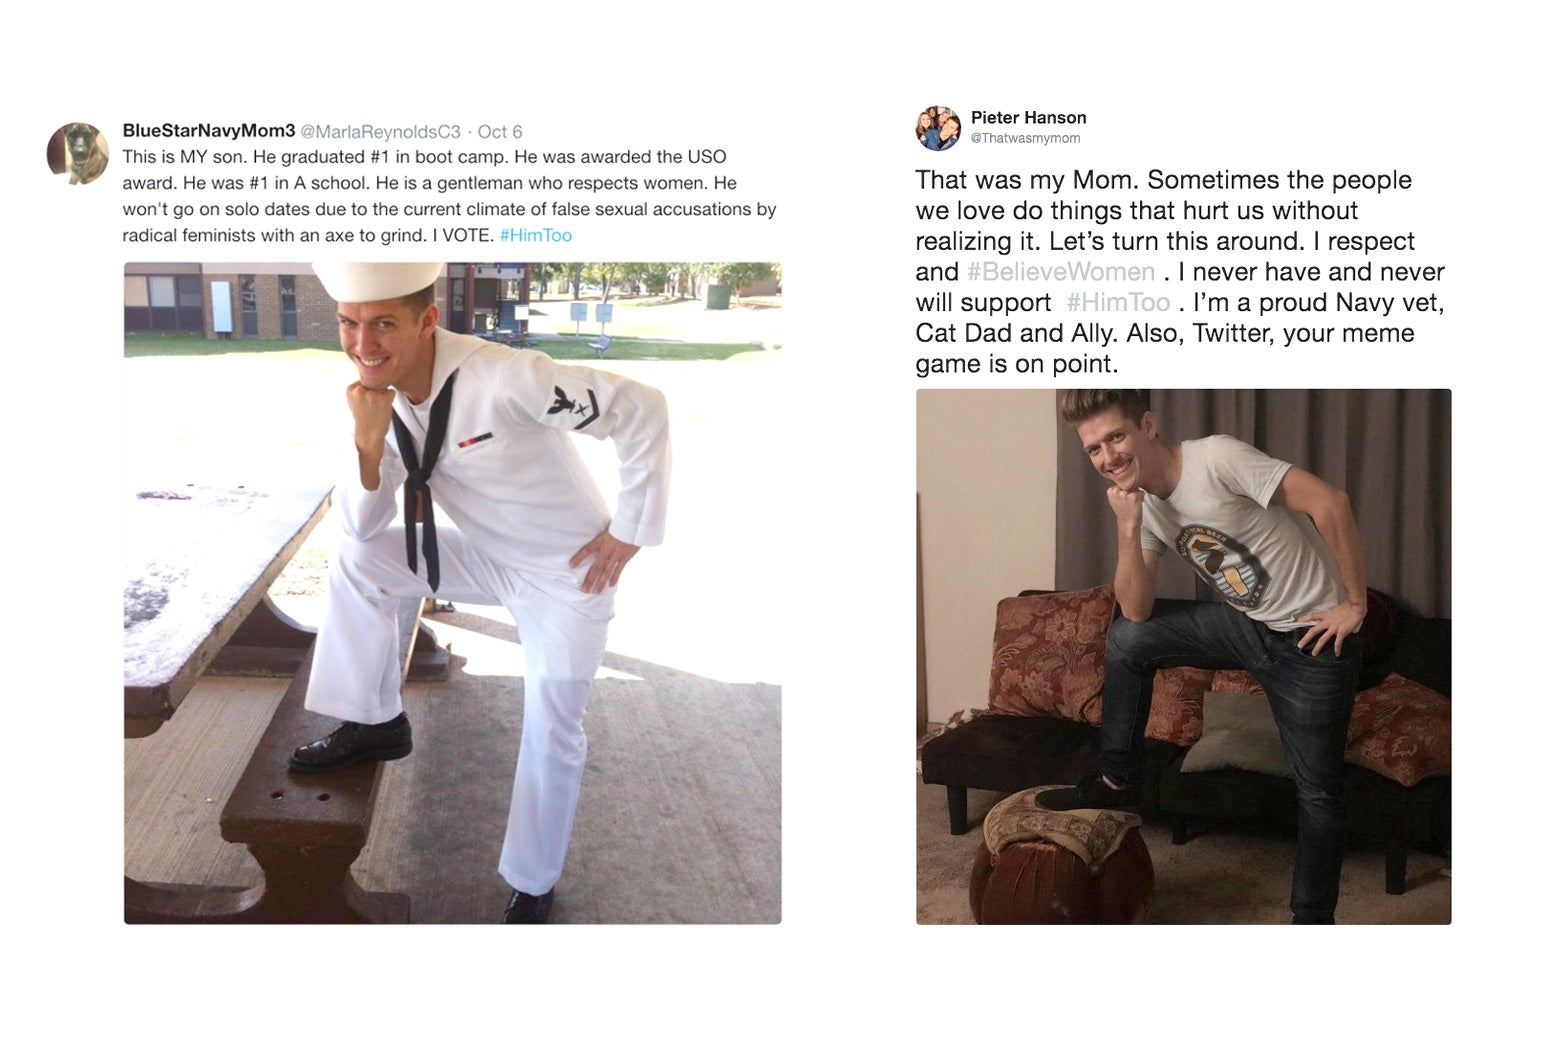 Screenshots of the original tweets side by side.